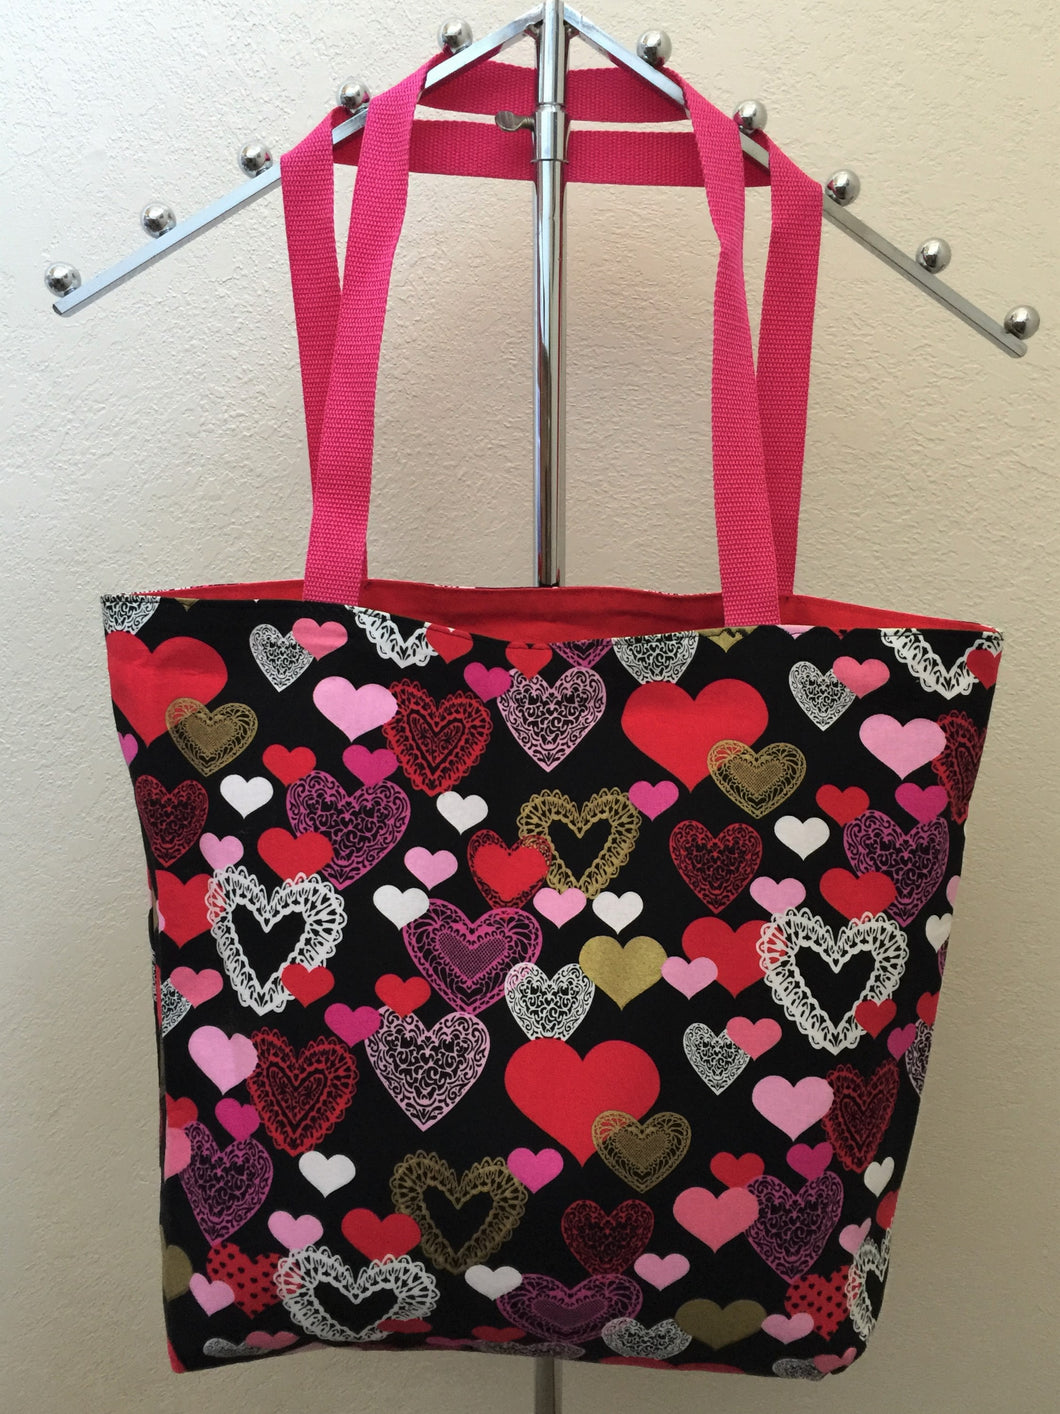 Multi-Color Hearts on Black